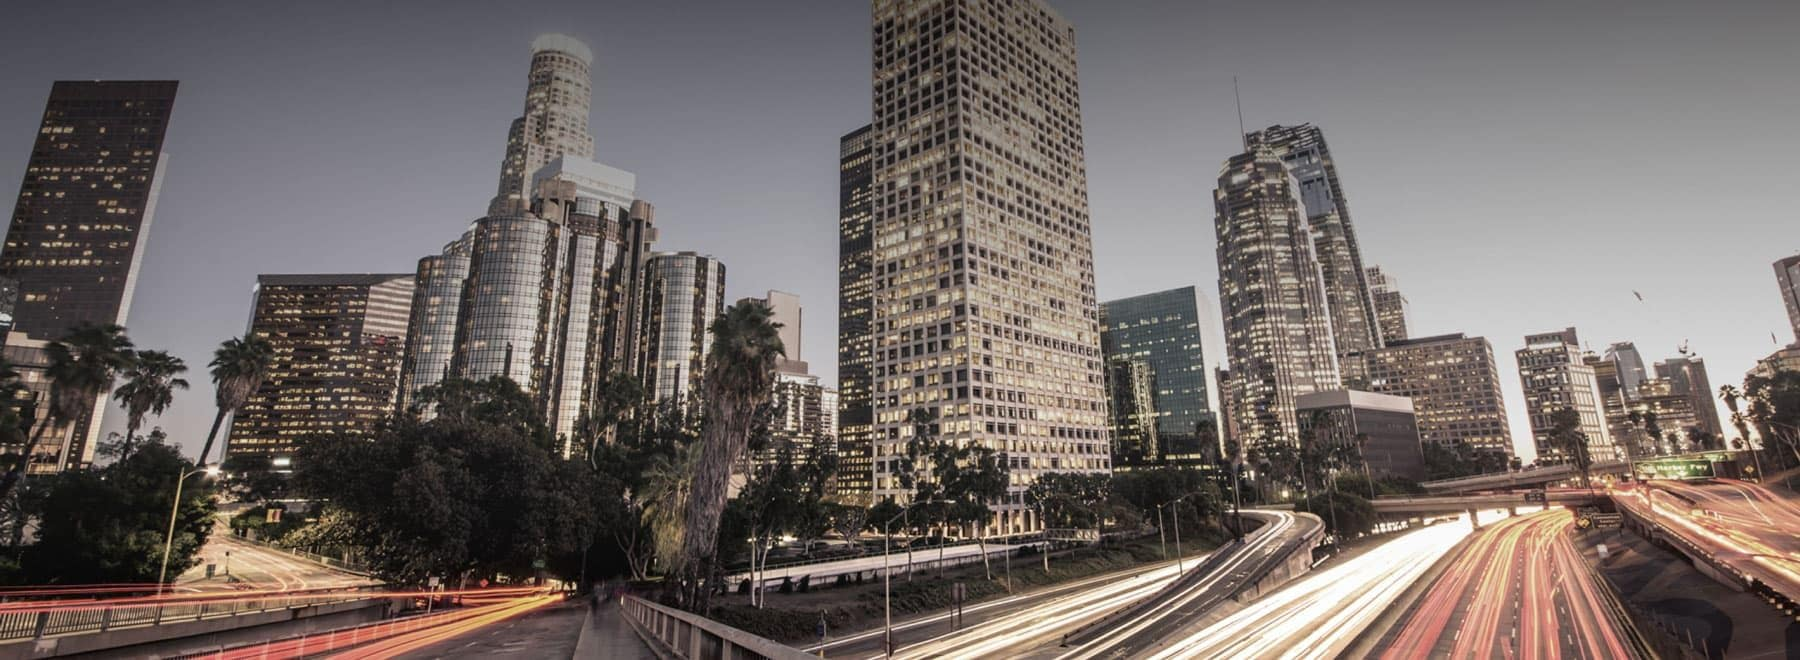 View of Downtown L.A. during rush hour